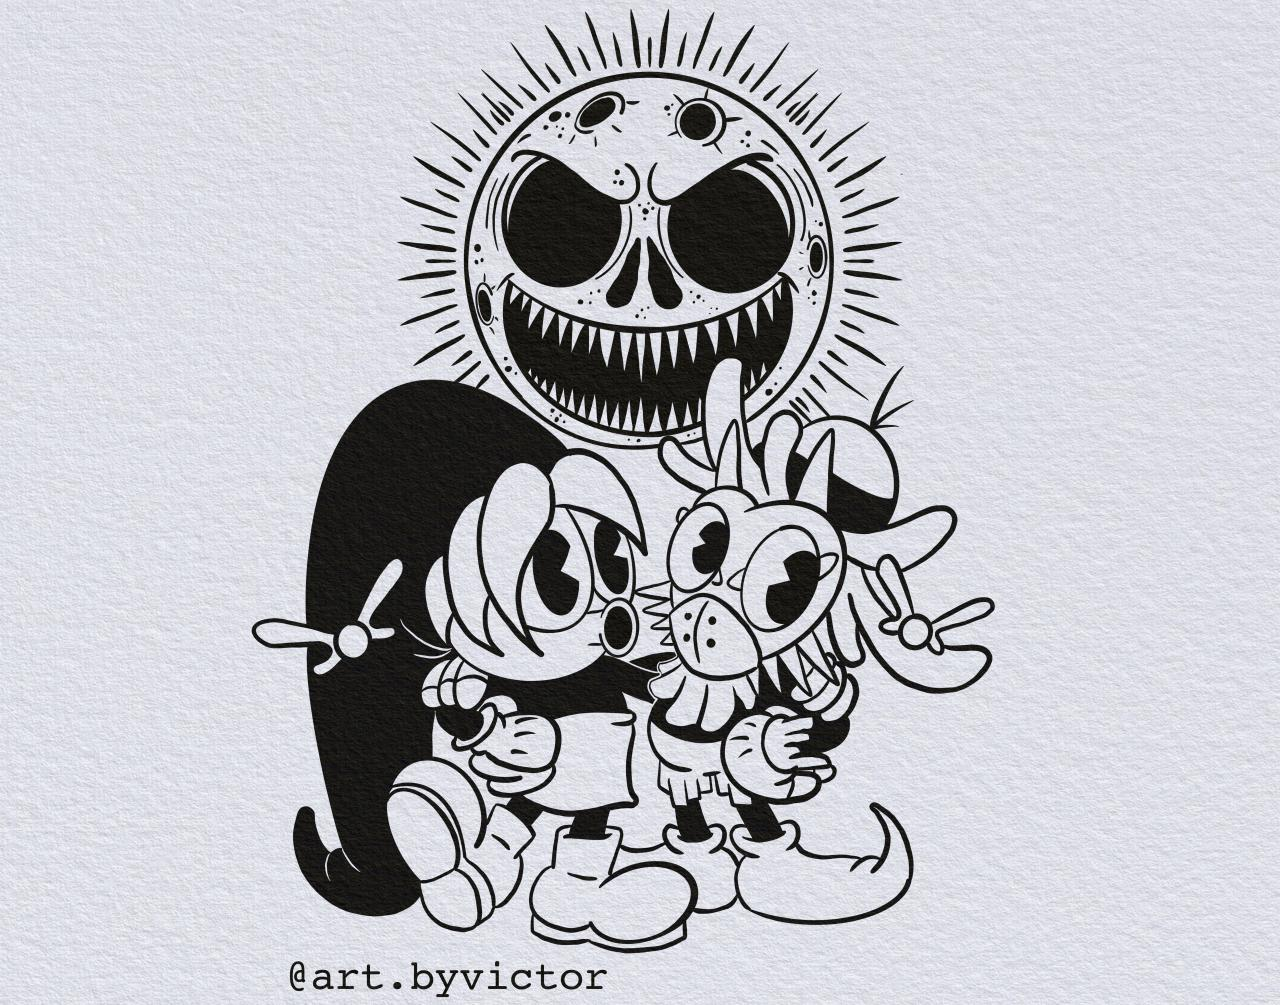 This is from u/Sloaking's r/DrawMyTattoo request. Deku Link and Skull Kid in a rubber hose style (: